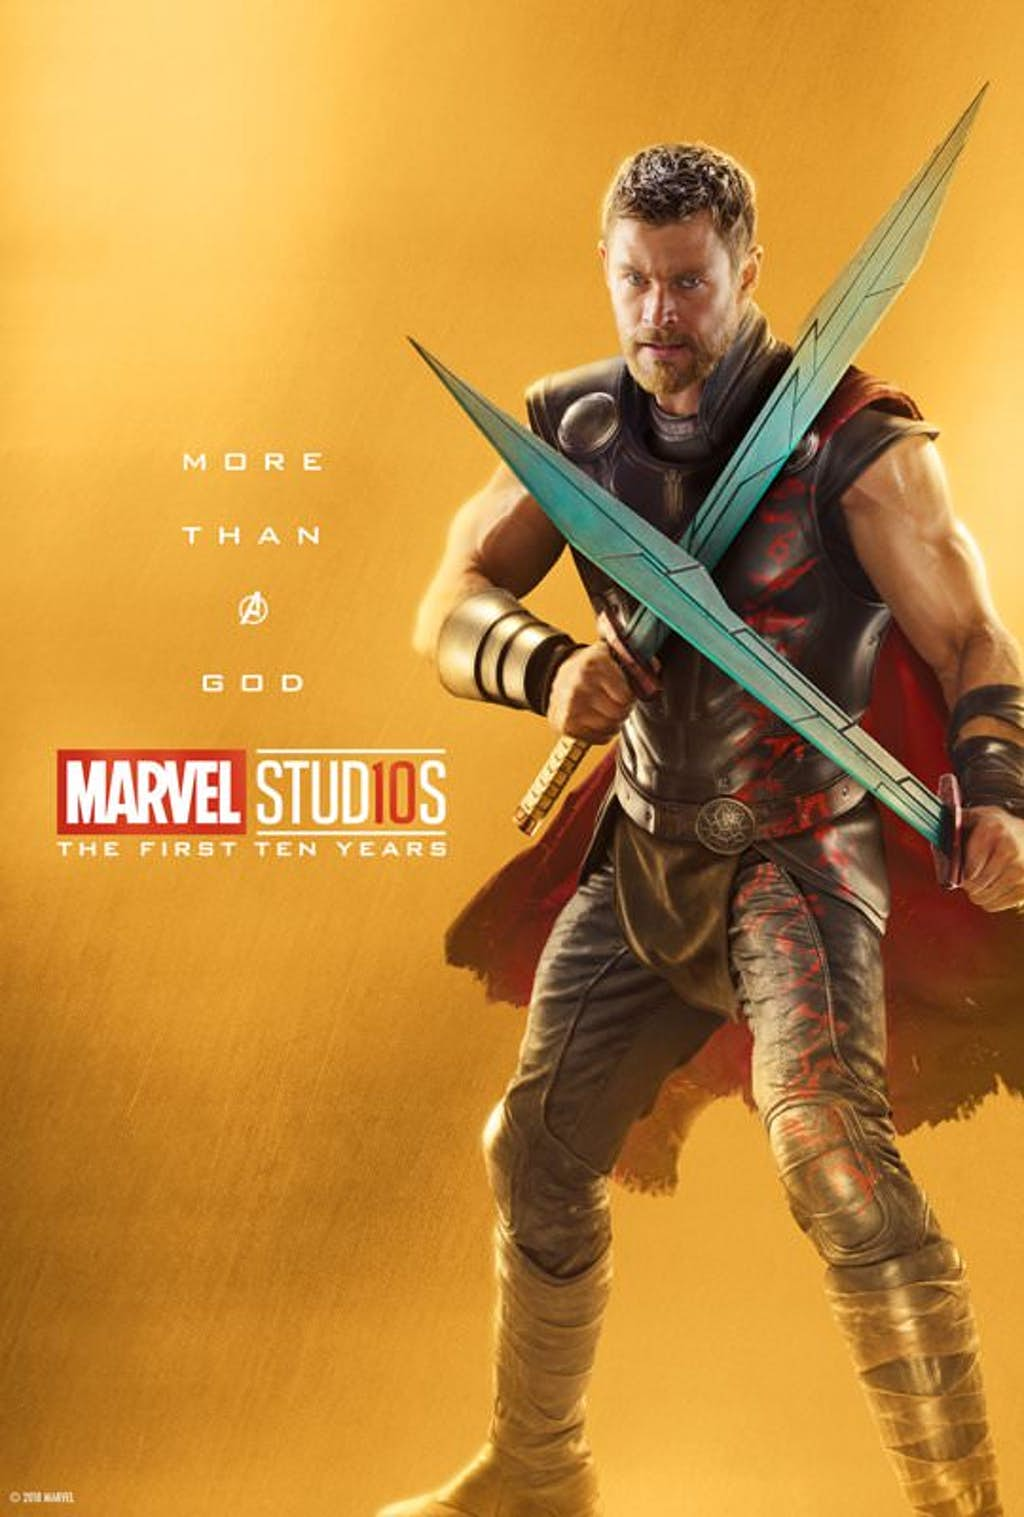 marvel studios releases wave 1 of 10th anniversary posters in lead up to avengers infinity war